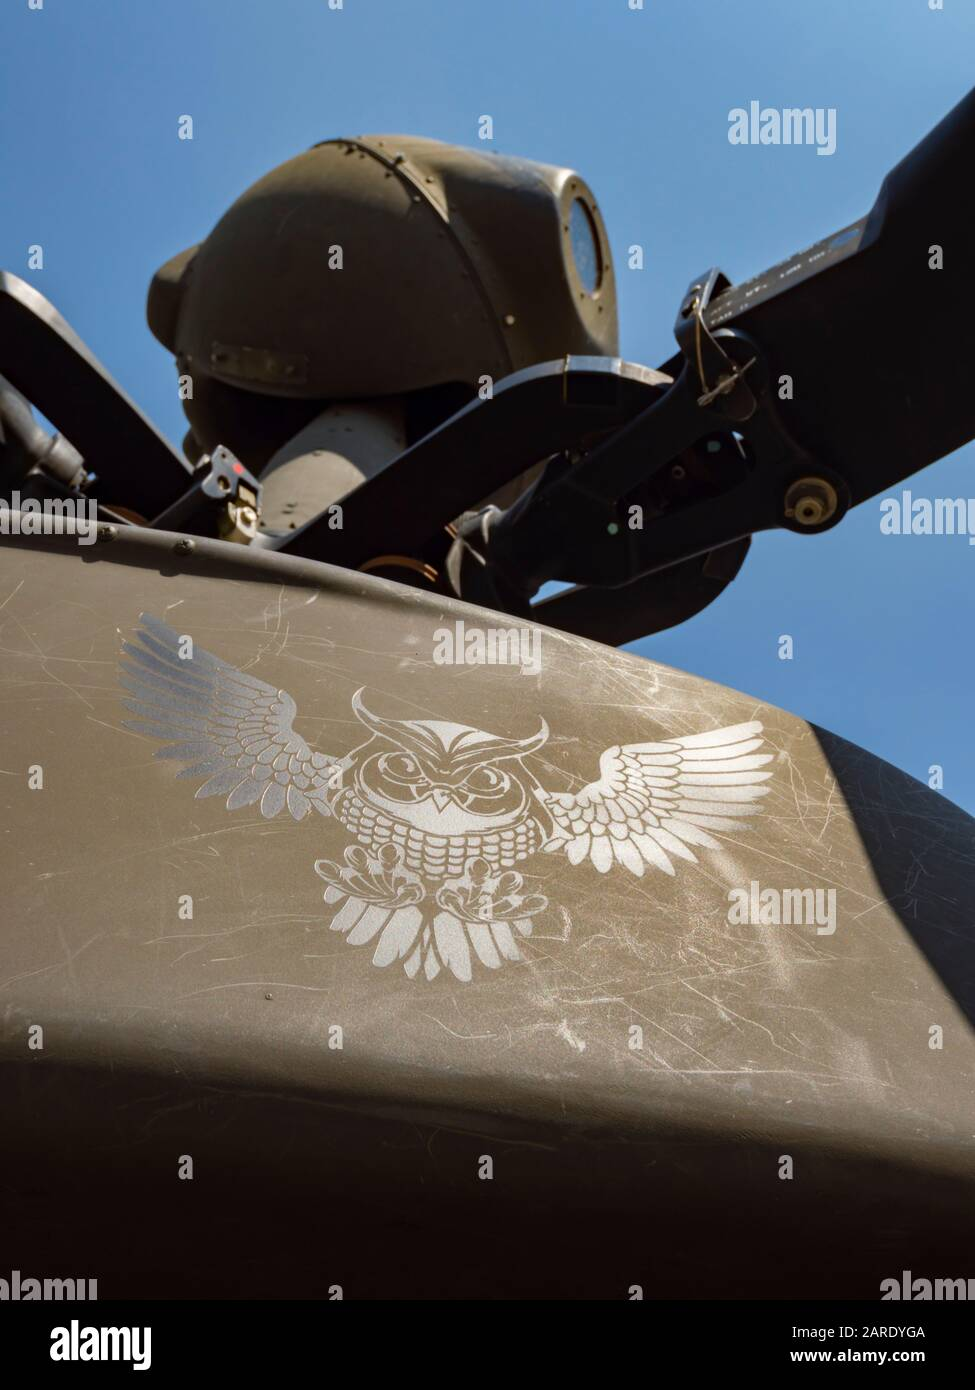 Kiowa Warrior OH-58D helicopter OH58D HRZ Croatian Air Force surface closeup close-up winged badge Stock Photo